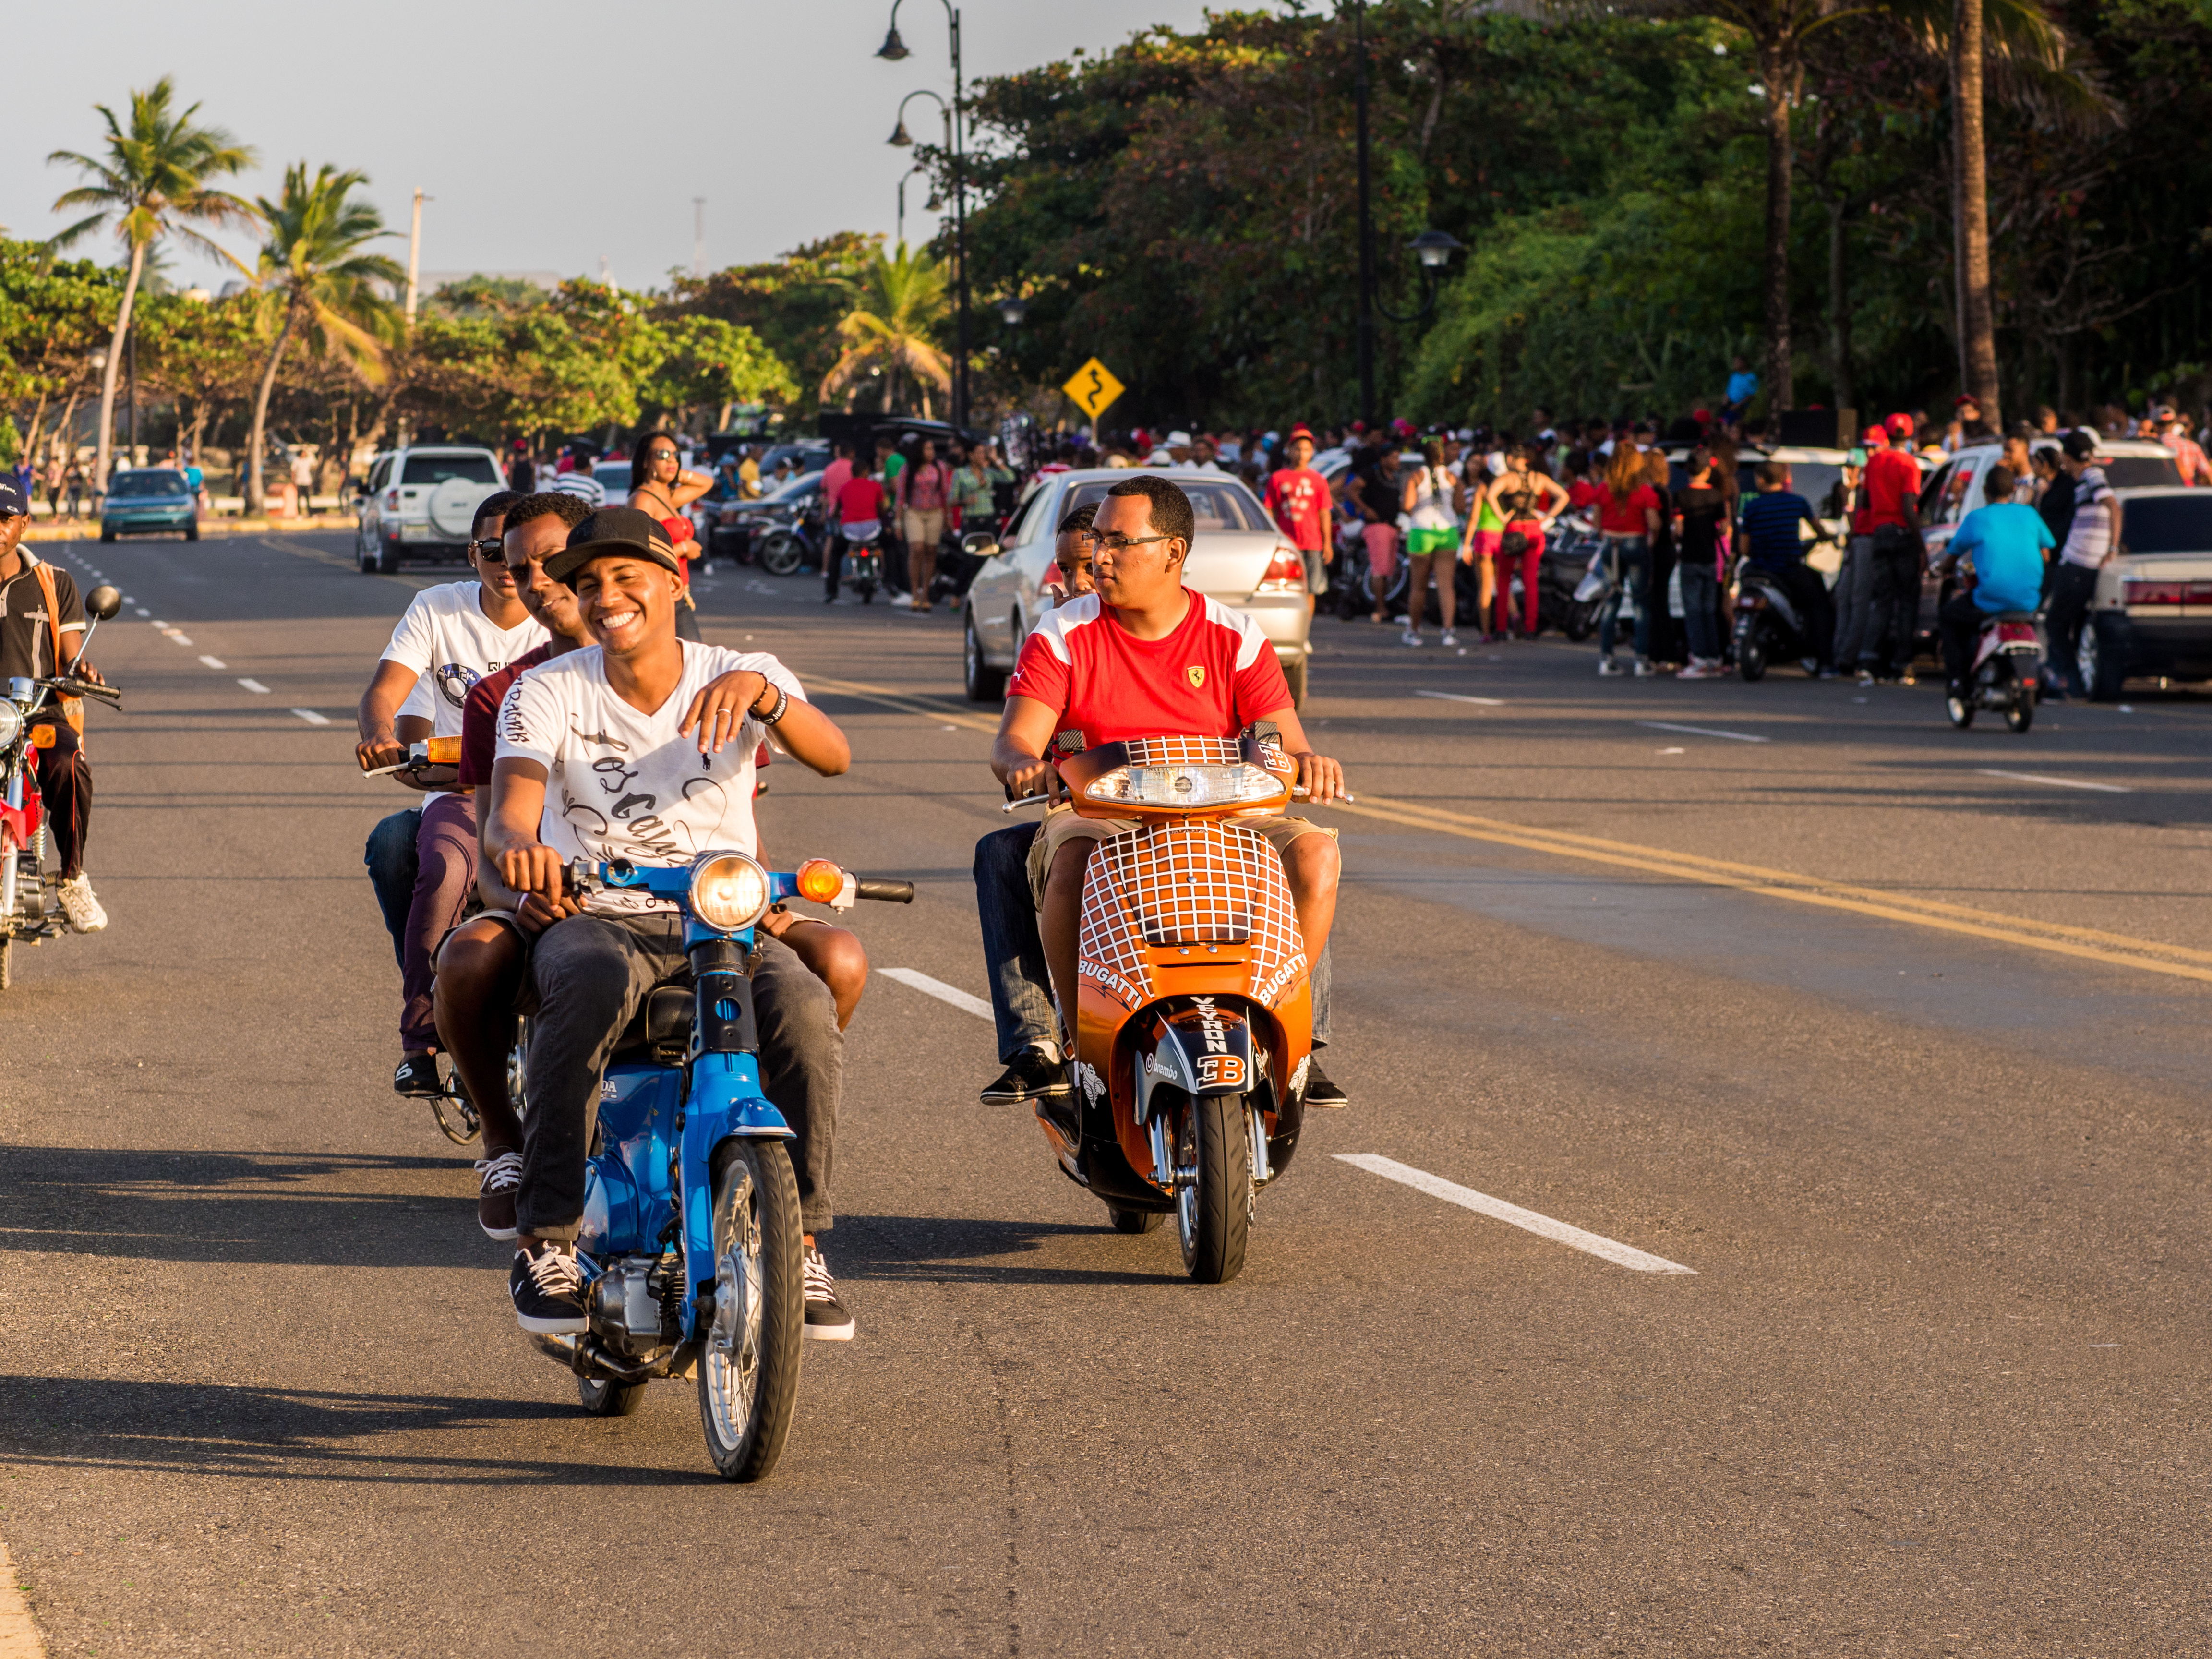 Puerto Plata, Dominican Republic - February 27, 2013: People riding their motorbikes on the streets celebrating Independence Day in Puerto Plata, Dominican Republic.